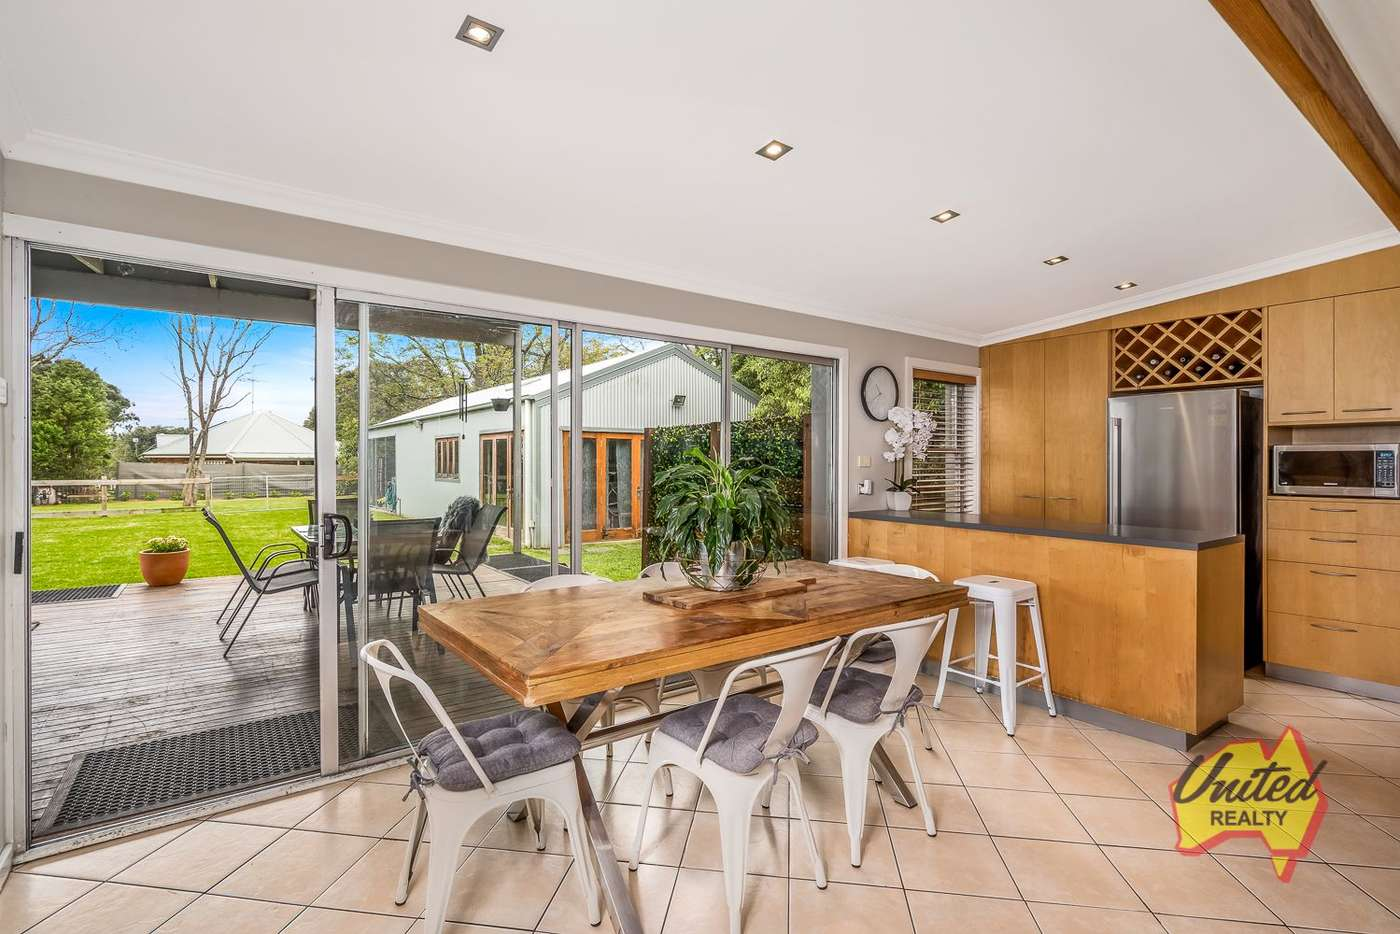 Fifth view of Homely house listing, 261 Cobbitty Road, Cobbitty NSW 2570